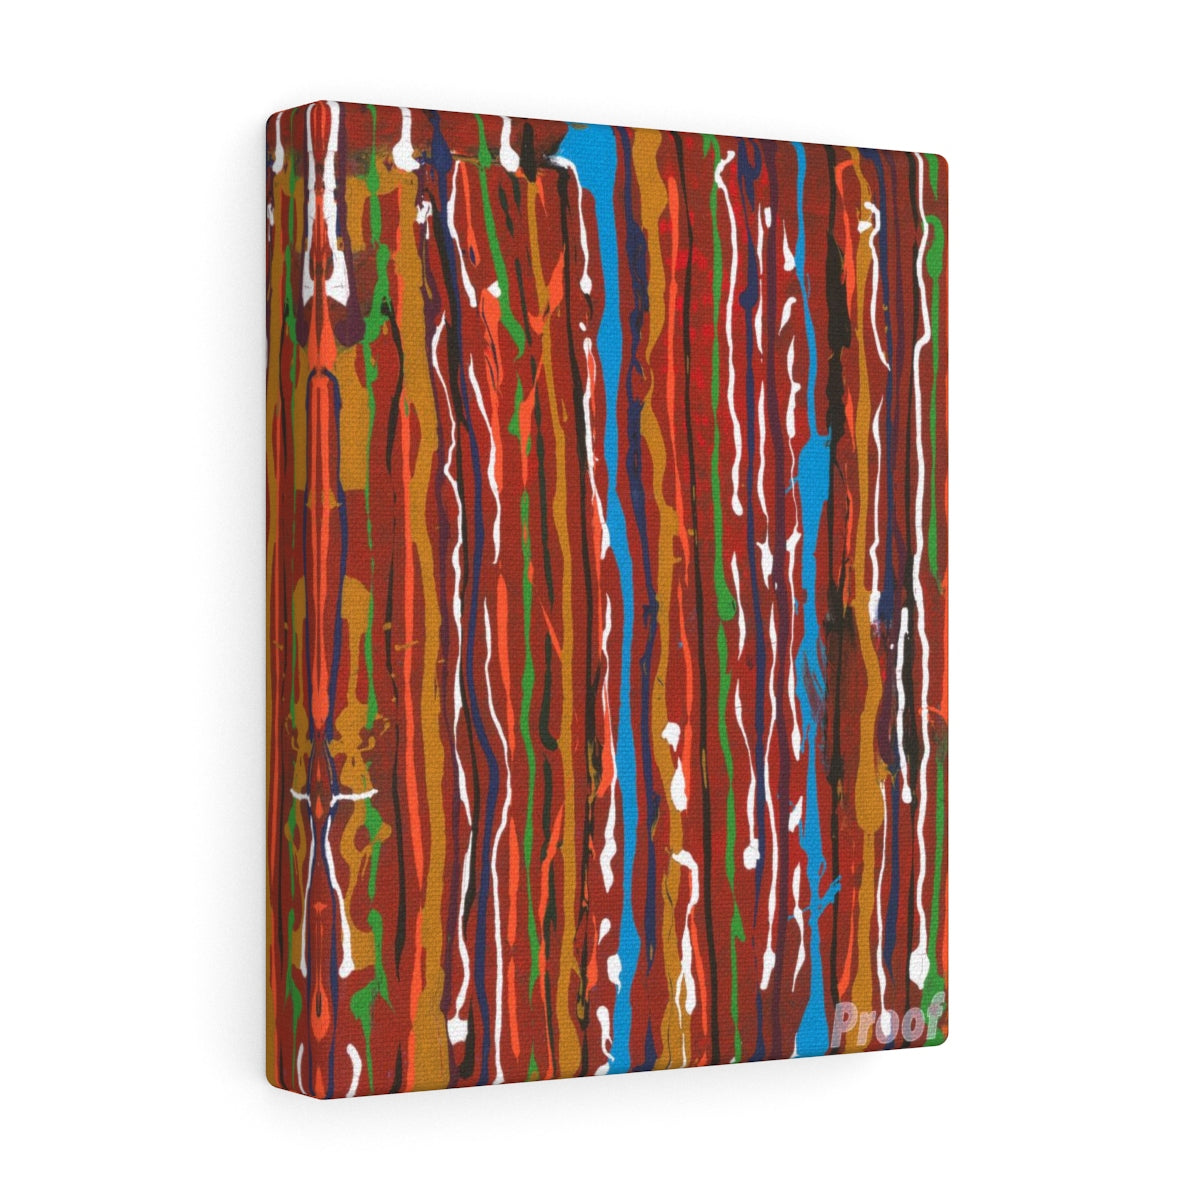 "CARNIVAL  Canvas Gallery Wraps  16"" x 12"""